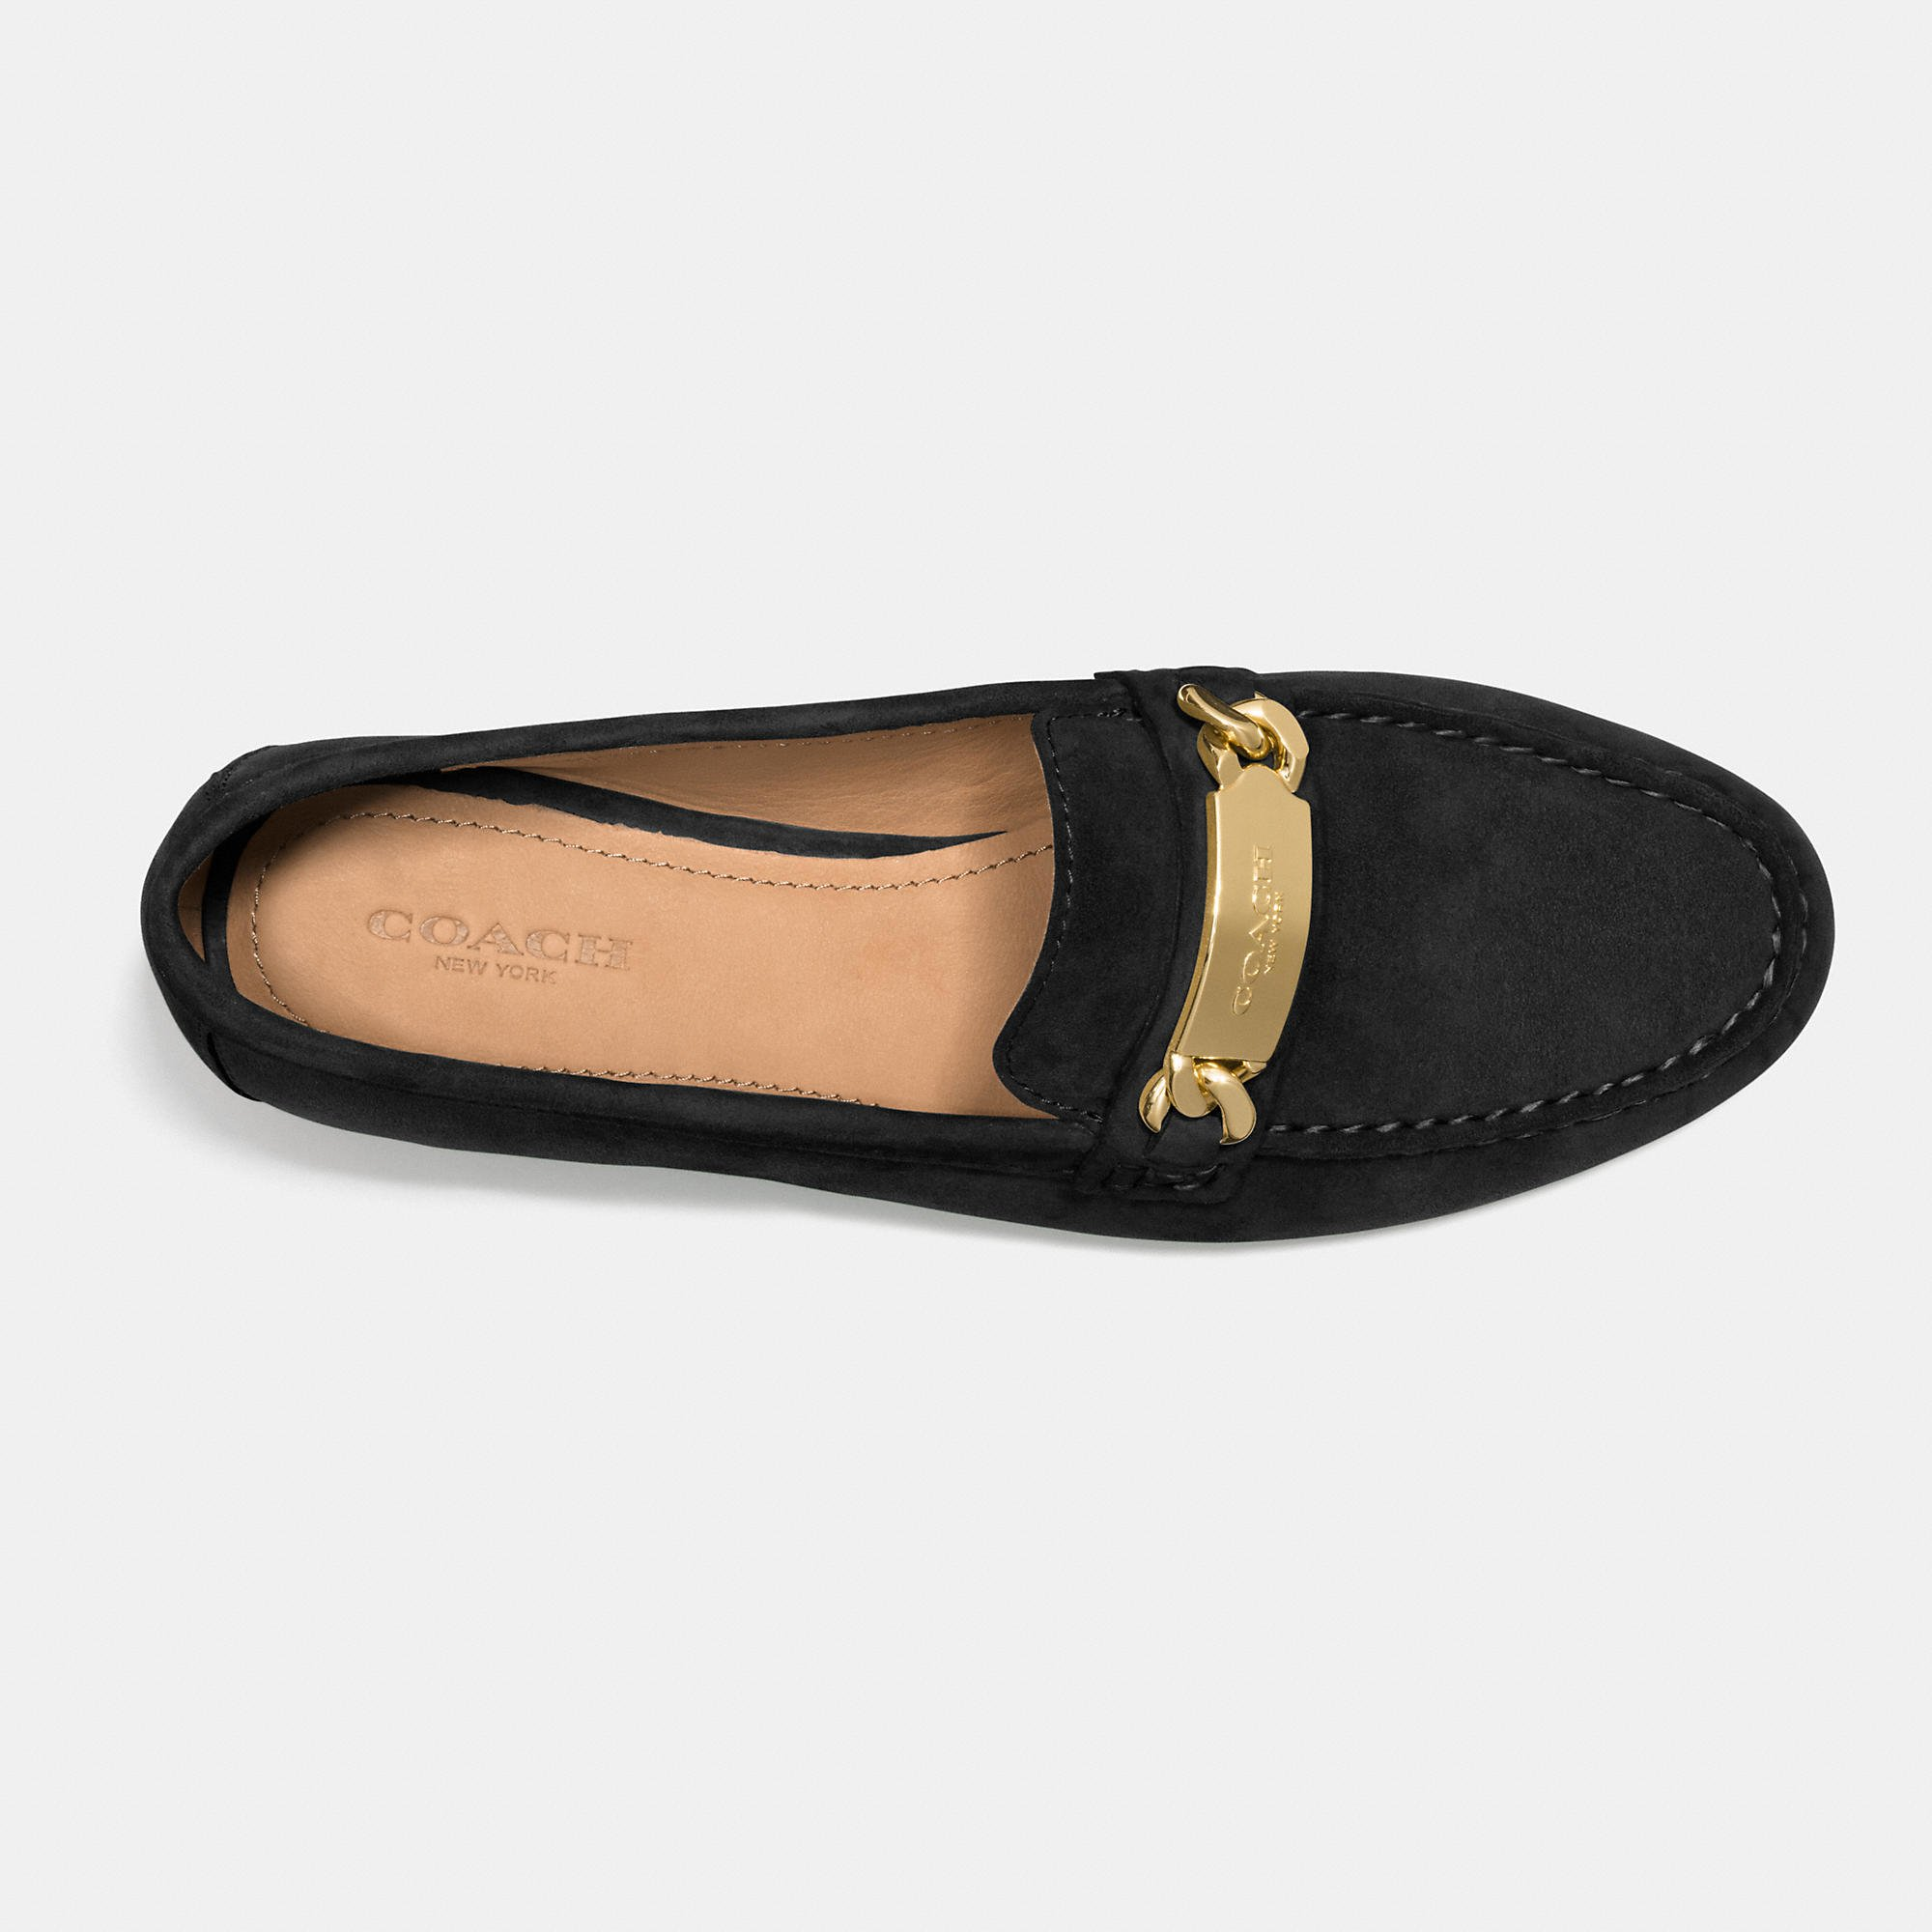 COACH Kimmie Topstitched Suede Loafers in Black - Lyst